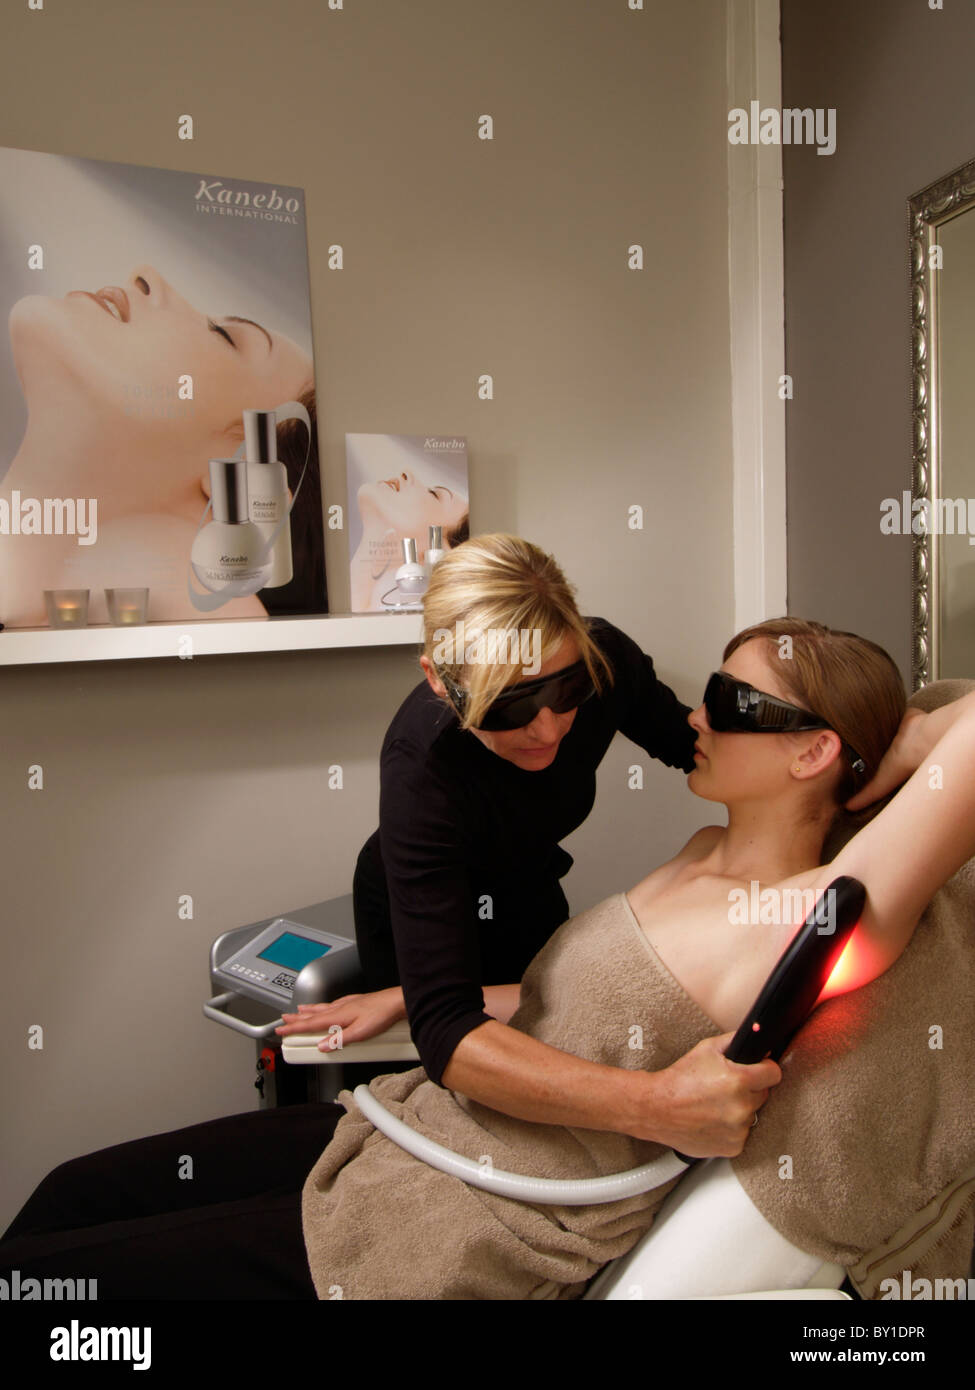 Armpit Hair Removal Using Ipl Or Intense Pulsed Lighting Stock Photo